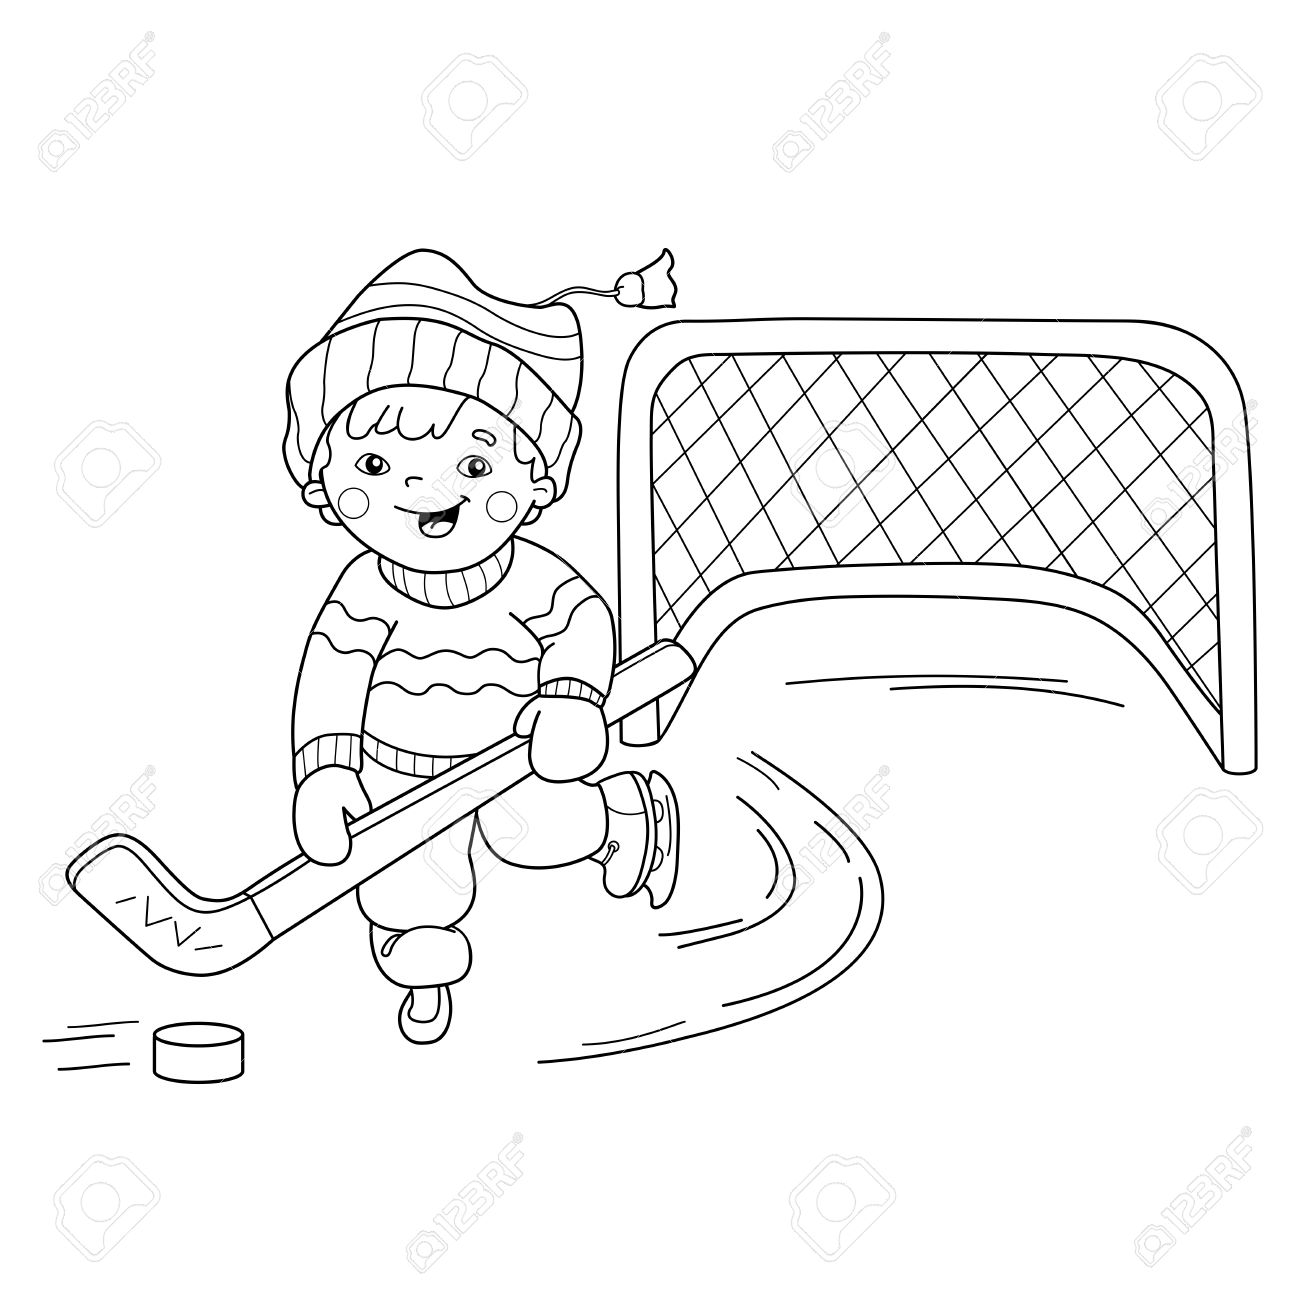 coloring page outline of cartoon boy playing hockey winter sports coloring book for kids - Sports Coloring Book